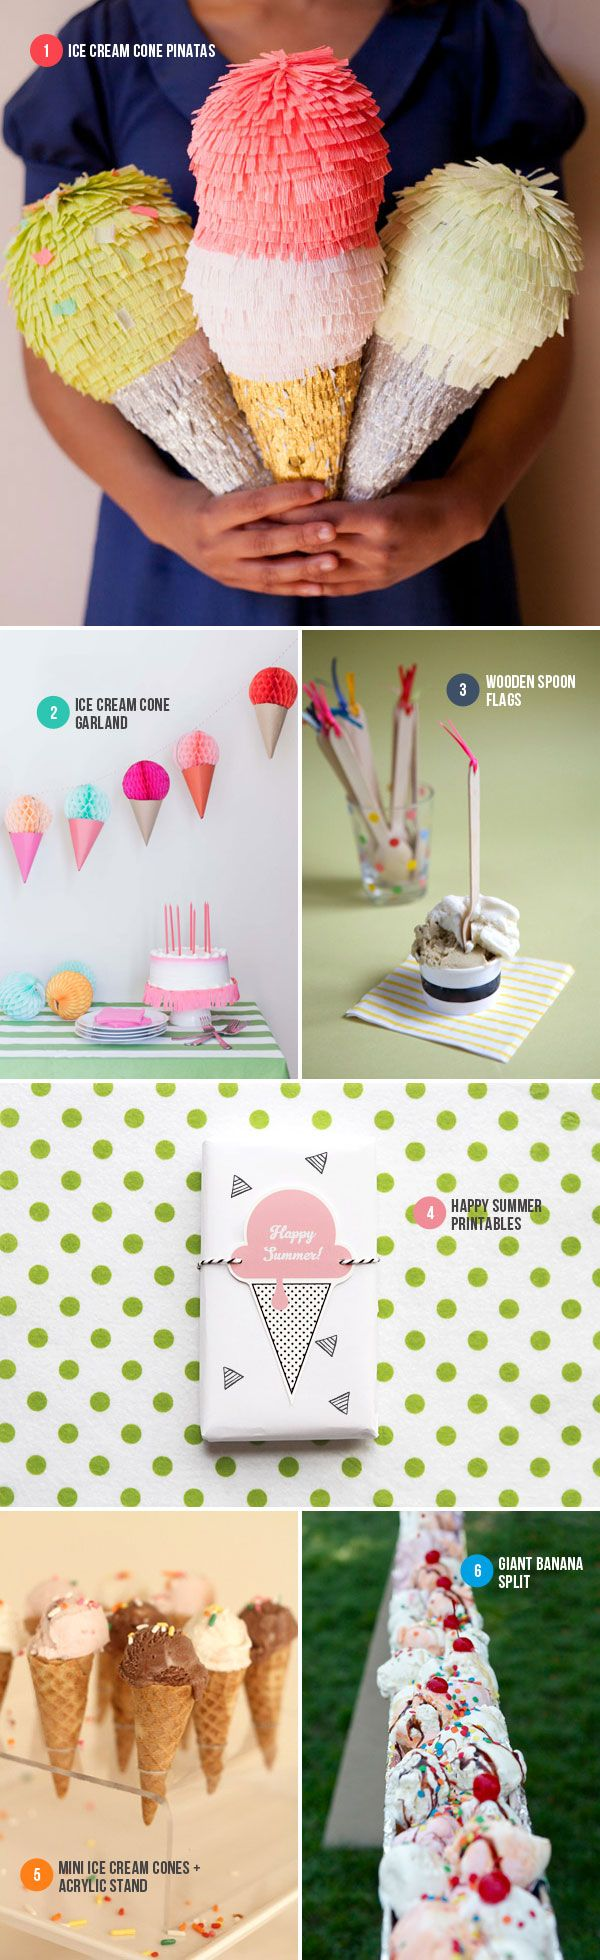 Ice Cream Party Ideas | Oh Happy Day!